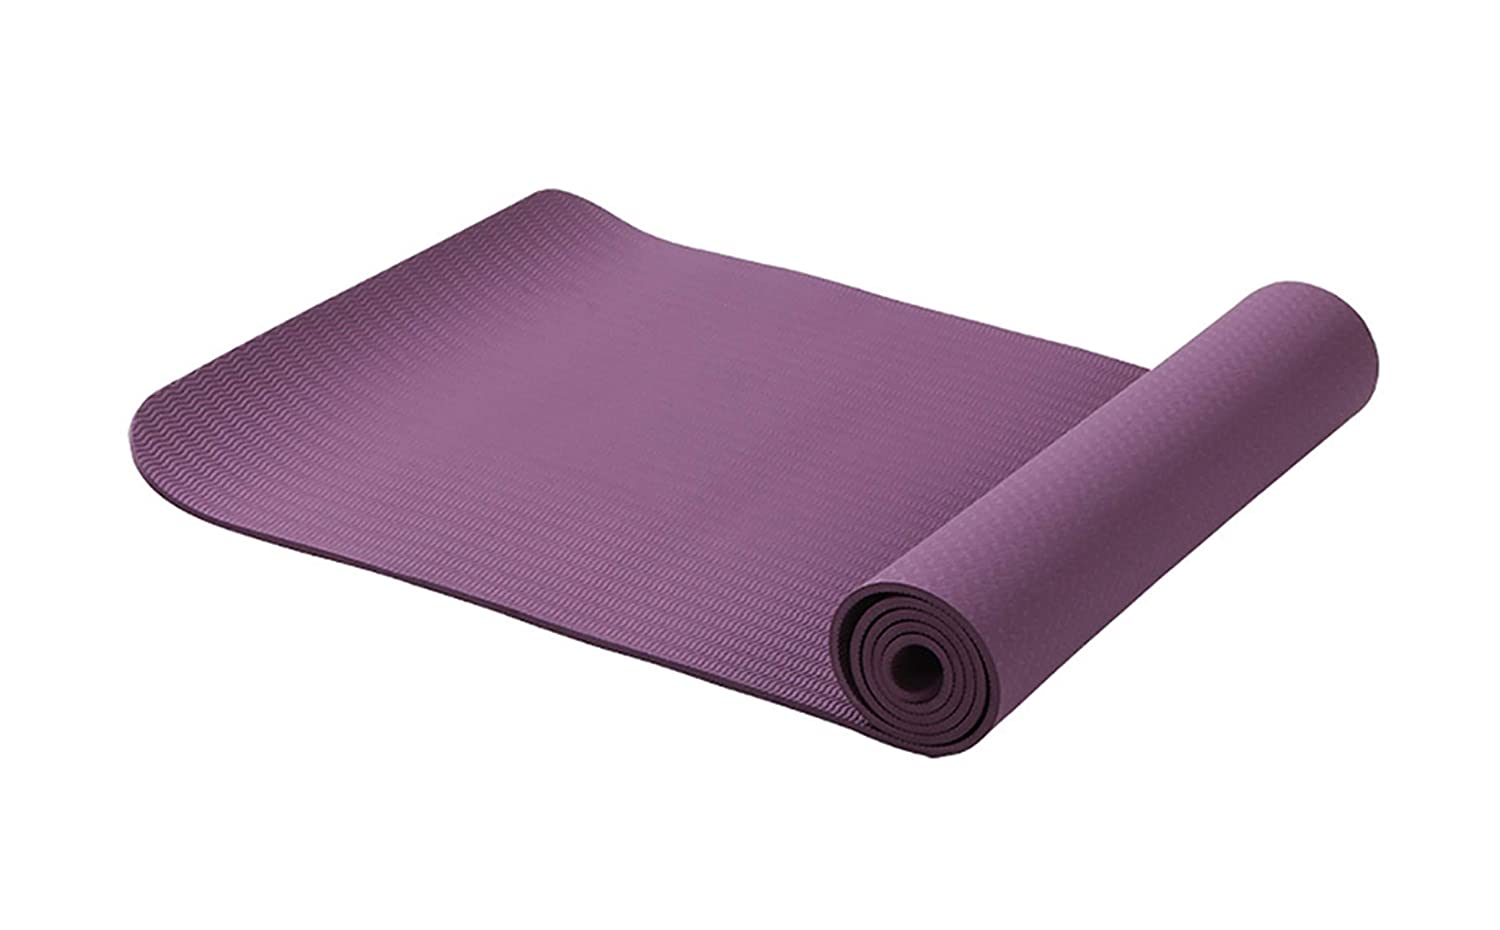 Amazon.com: 6MM TPE Non-Slip Yoga Mats for Fitness Tasteless ...